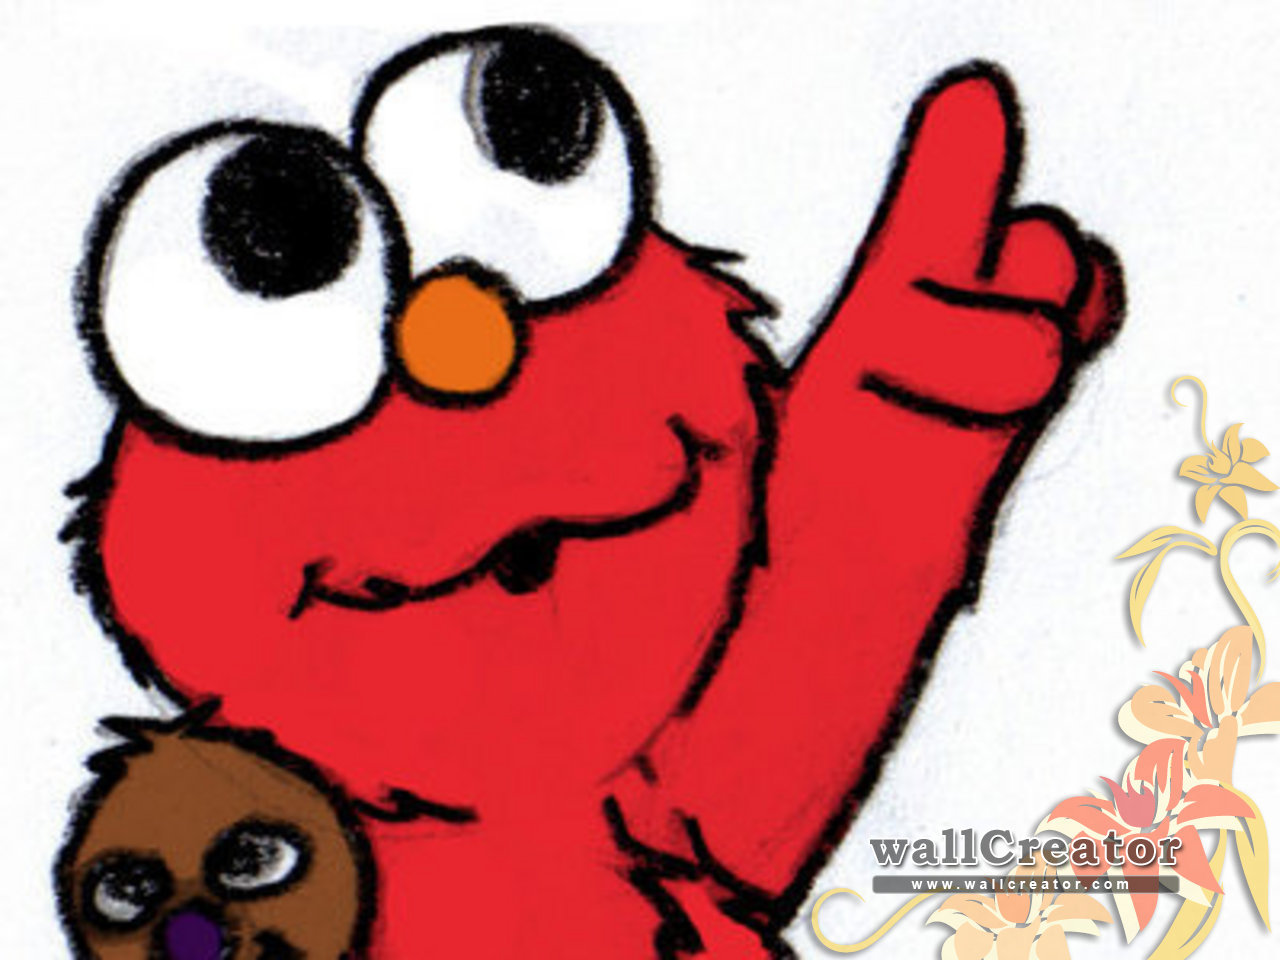 Gangster Elmo Wallpaper Pin By Amy On Pinterest Wallpapers IPhone And Hd 1280x960